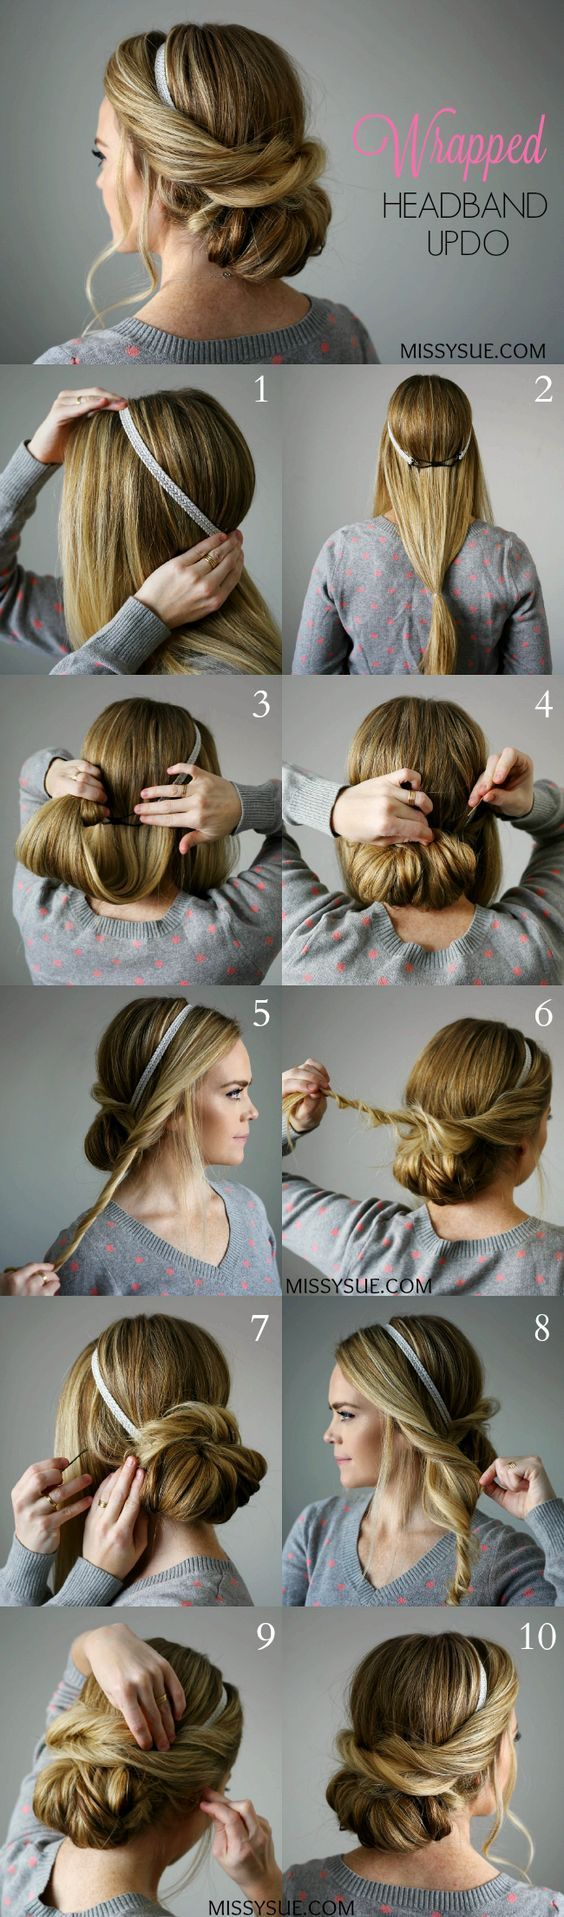 awesome Cute And Easy First Date Hairstyle Ideas - Page 2 of 4 - Trend To Wear... by http://www.danahaircuts.xyz/hair-tutorials/cute-and-easy-first-date-hairstyle-ideas-page-2-of-4-trend-to-wear-2/